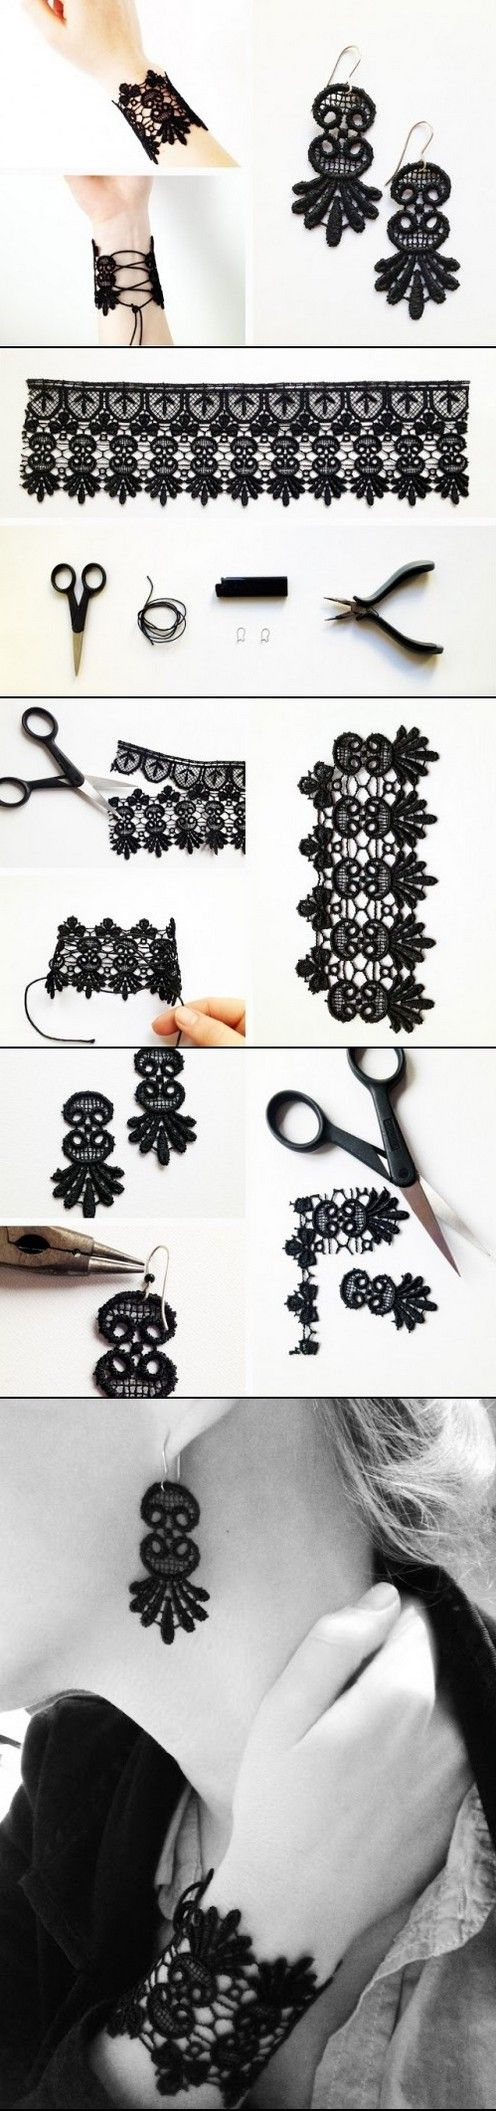 Interesting Fashion DIY ideas